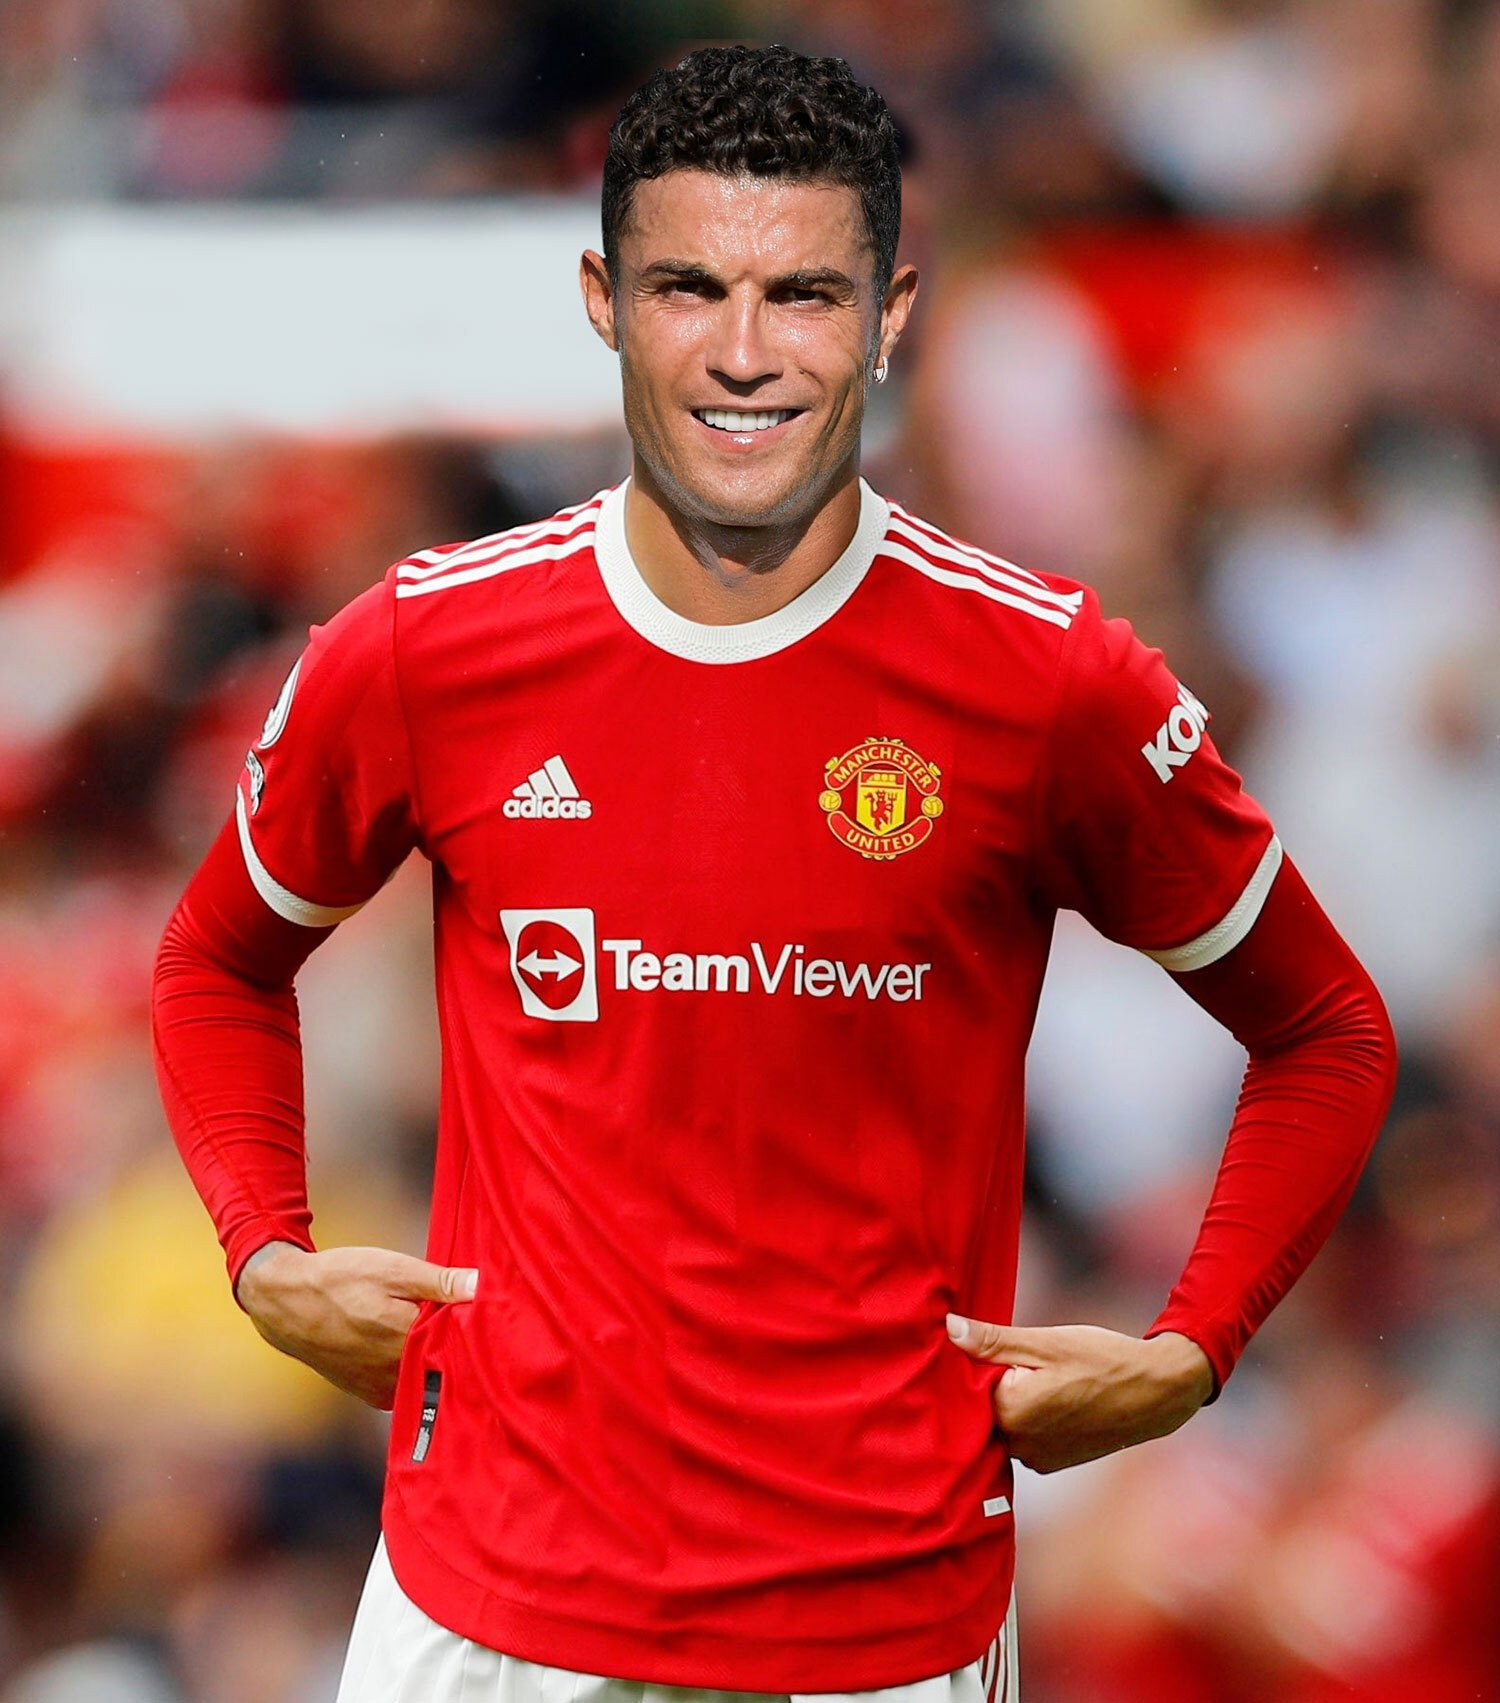 Cristiano Ronaldo Best Player Played Against